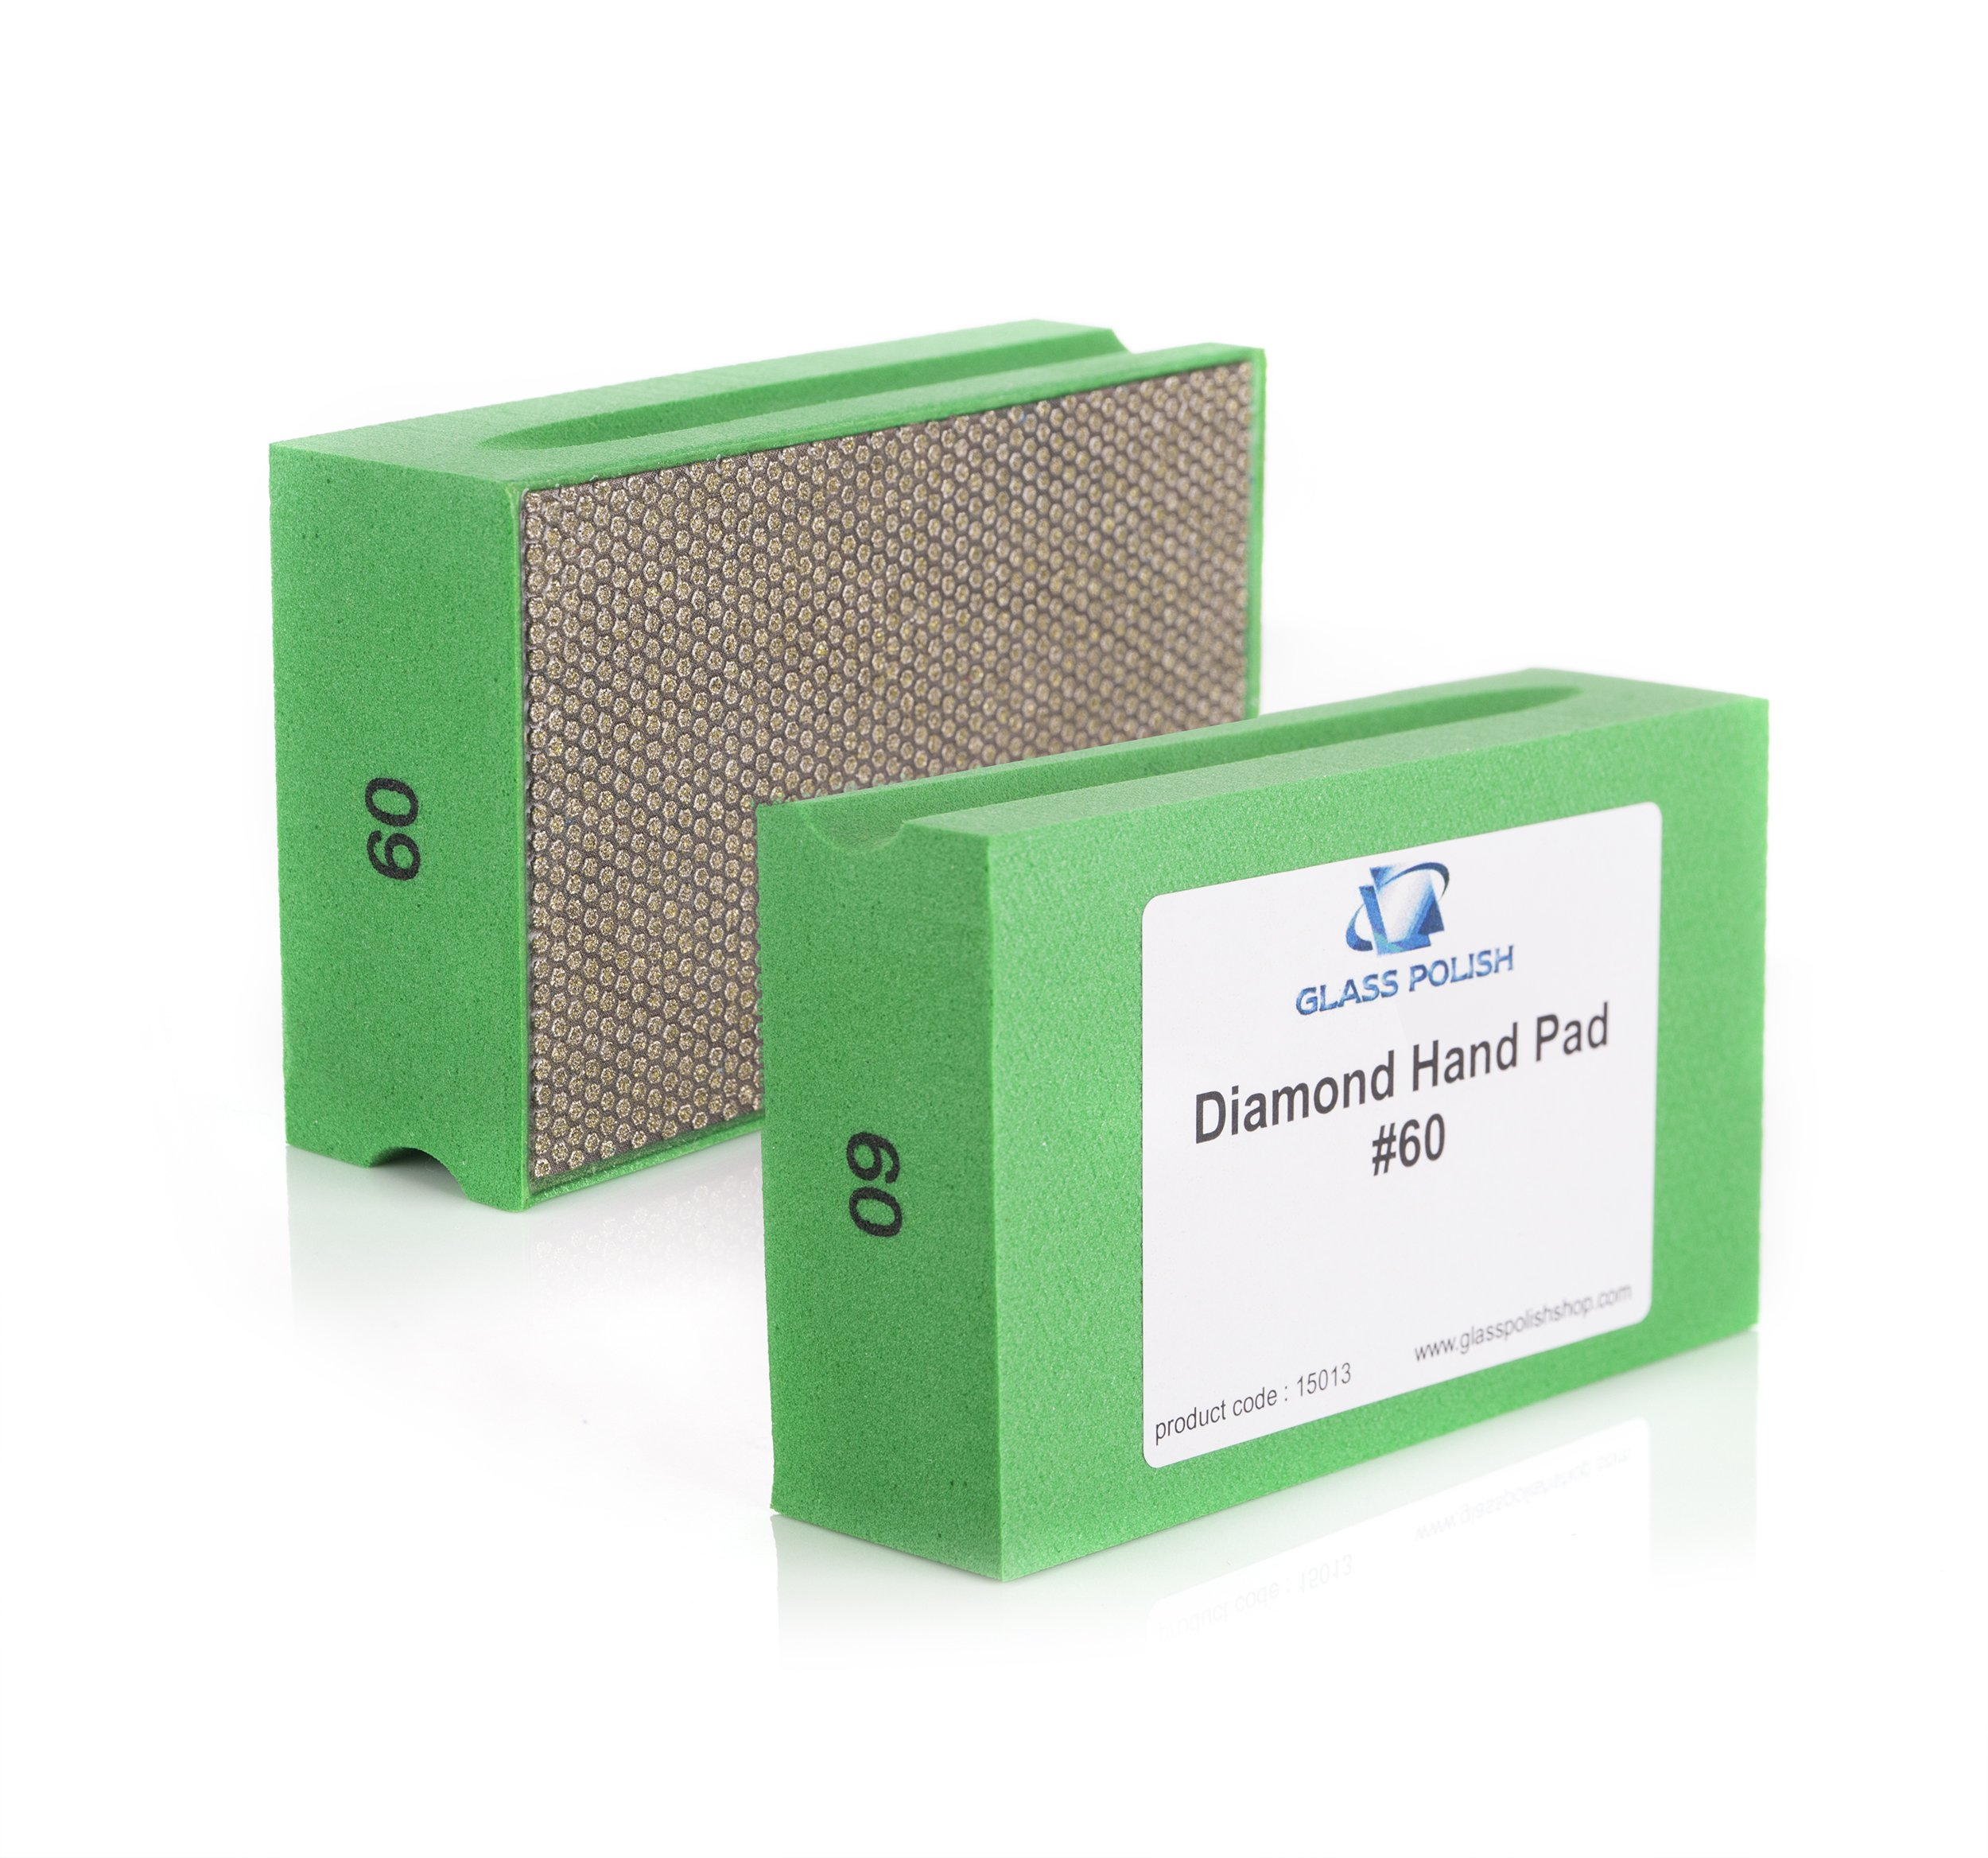 GP15013 Diamond Hand Sanding Pad for Sanding, Grinding, Polishing and Sharp Edges / for Glass, Stone, Marble, Concrete / A+ Class / GRIT 60 - Coarse